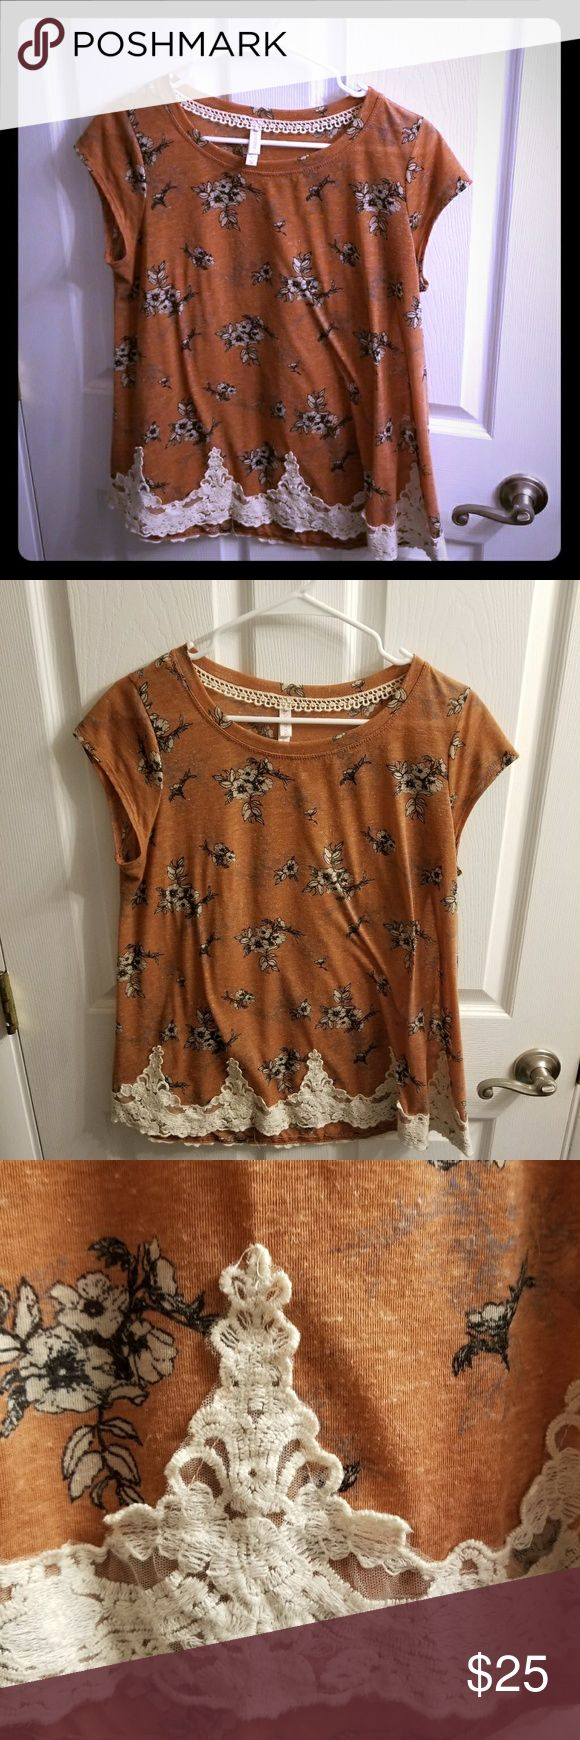 Lace Detail Top Cute lace trim on the bottom. This top fits more like a L although it is an XL.  The sides flare out a bit to give a flowy look. Color is pinkish orange, more on the nude colored side. Gently used, tiny bit of pilling, in good condition. Xhilaration Tops Tees - Short Sleeve